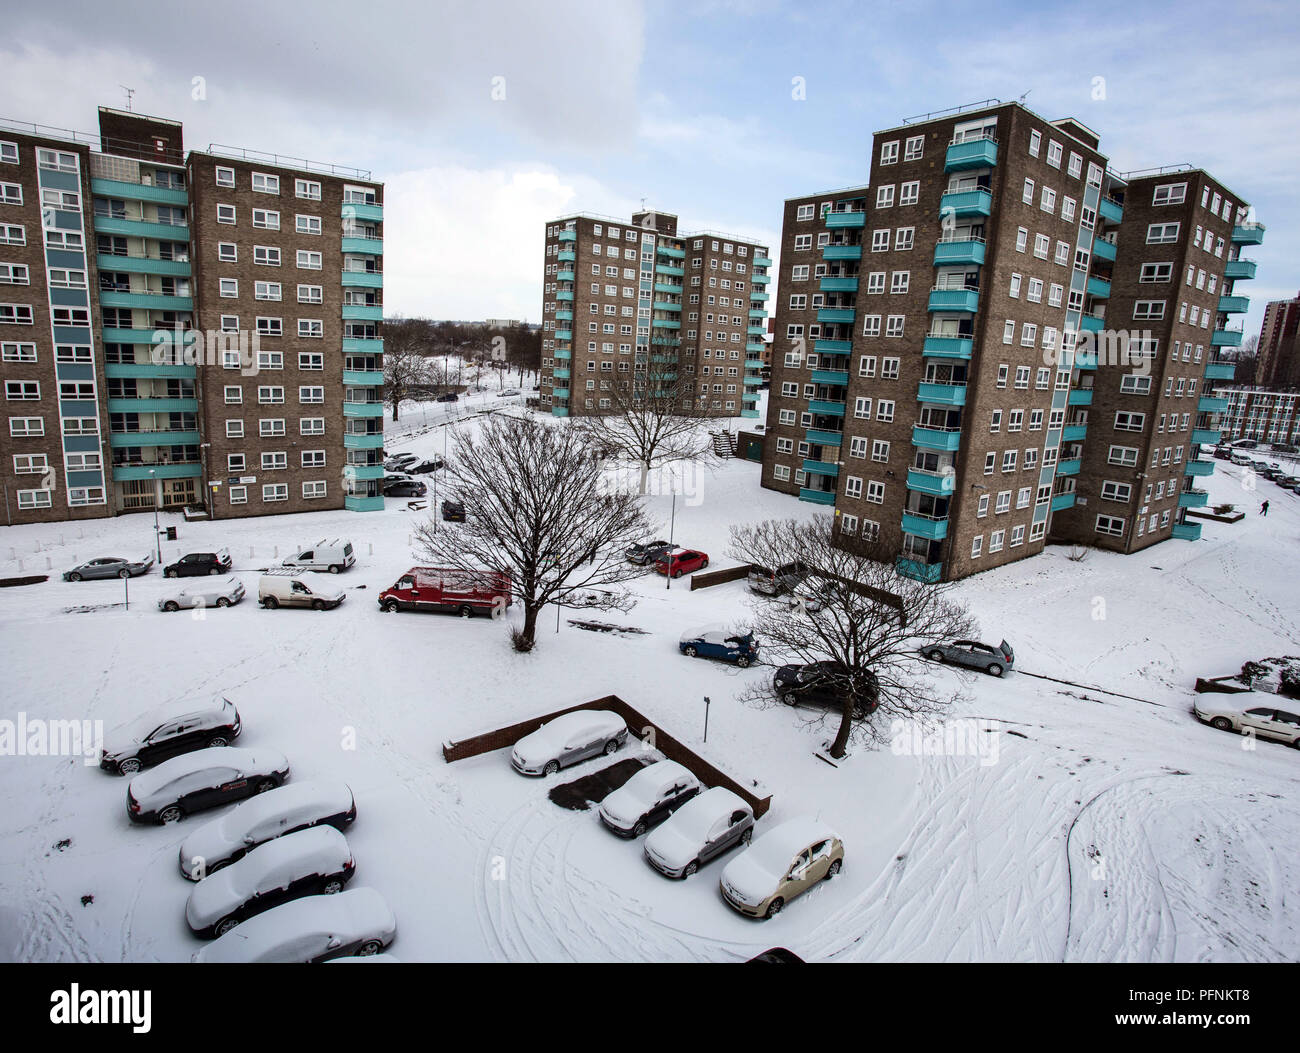 Leeds, UK. 28th Feb, 2018. Some council block of flats seen during the snowy winter in Leeds.Social housing is a method of housing tenure in which the home is possessed by a local authority, which may be central or local, Social housing is a rental housing which may be owned and ran by the state, by non-profit organizations, or by a combination of the two, usually with the purpose of delivering affordable housing. Social housing can also be perceived as a potential solution to housing inequality. Credit: Rahman Hassani/SOPA Images/ZUMA Wire/Alamy Live News - Stock Image